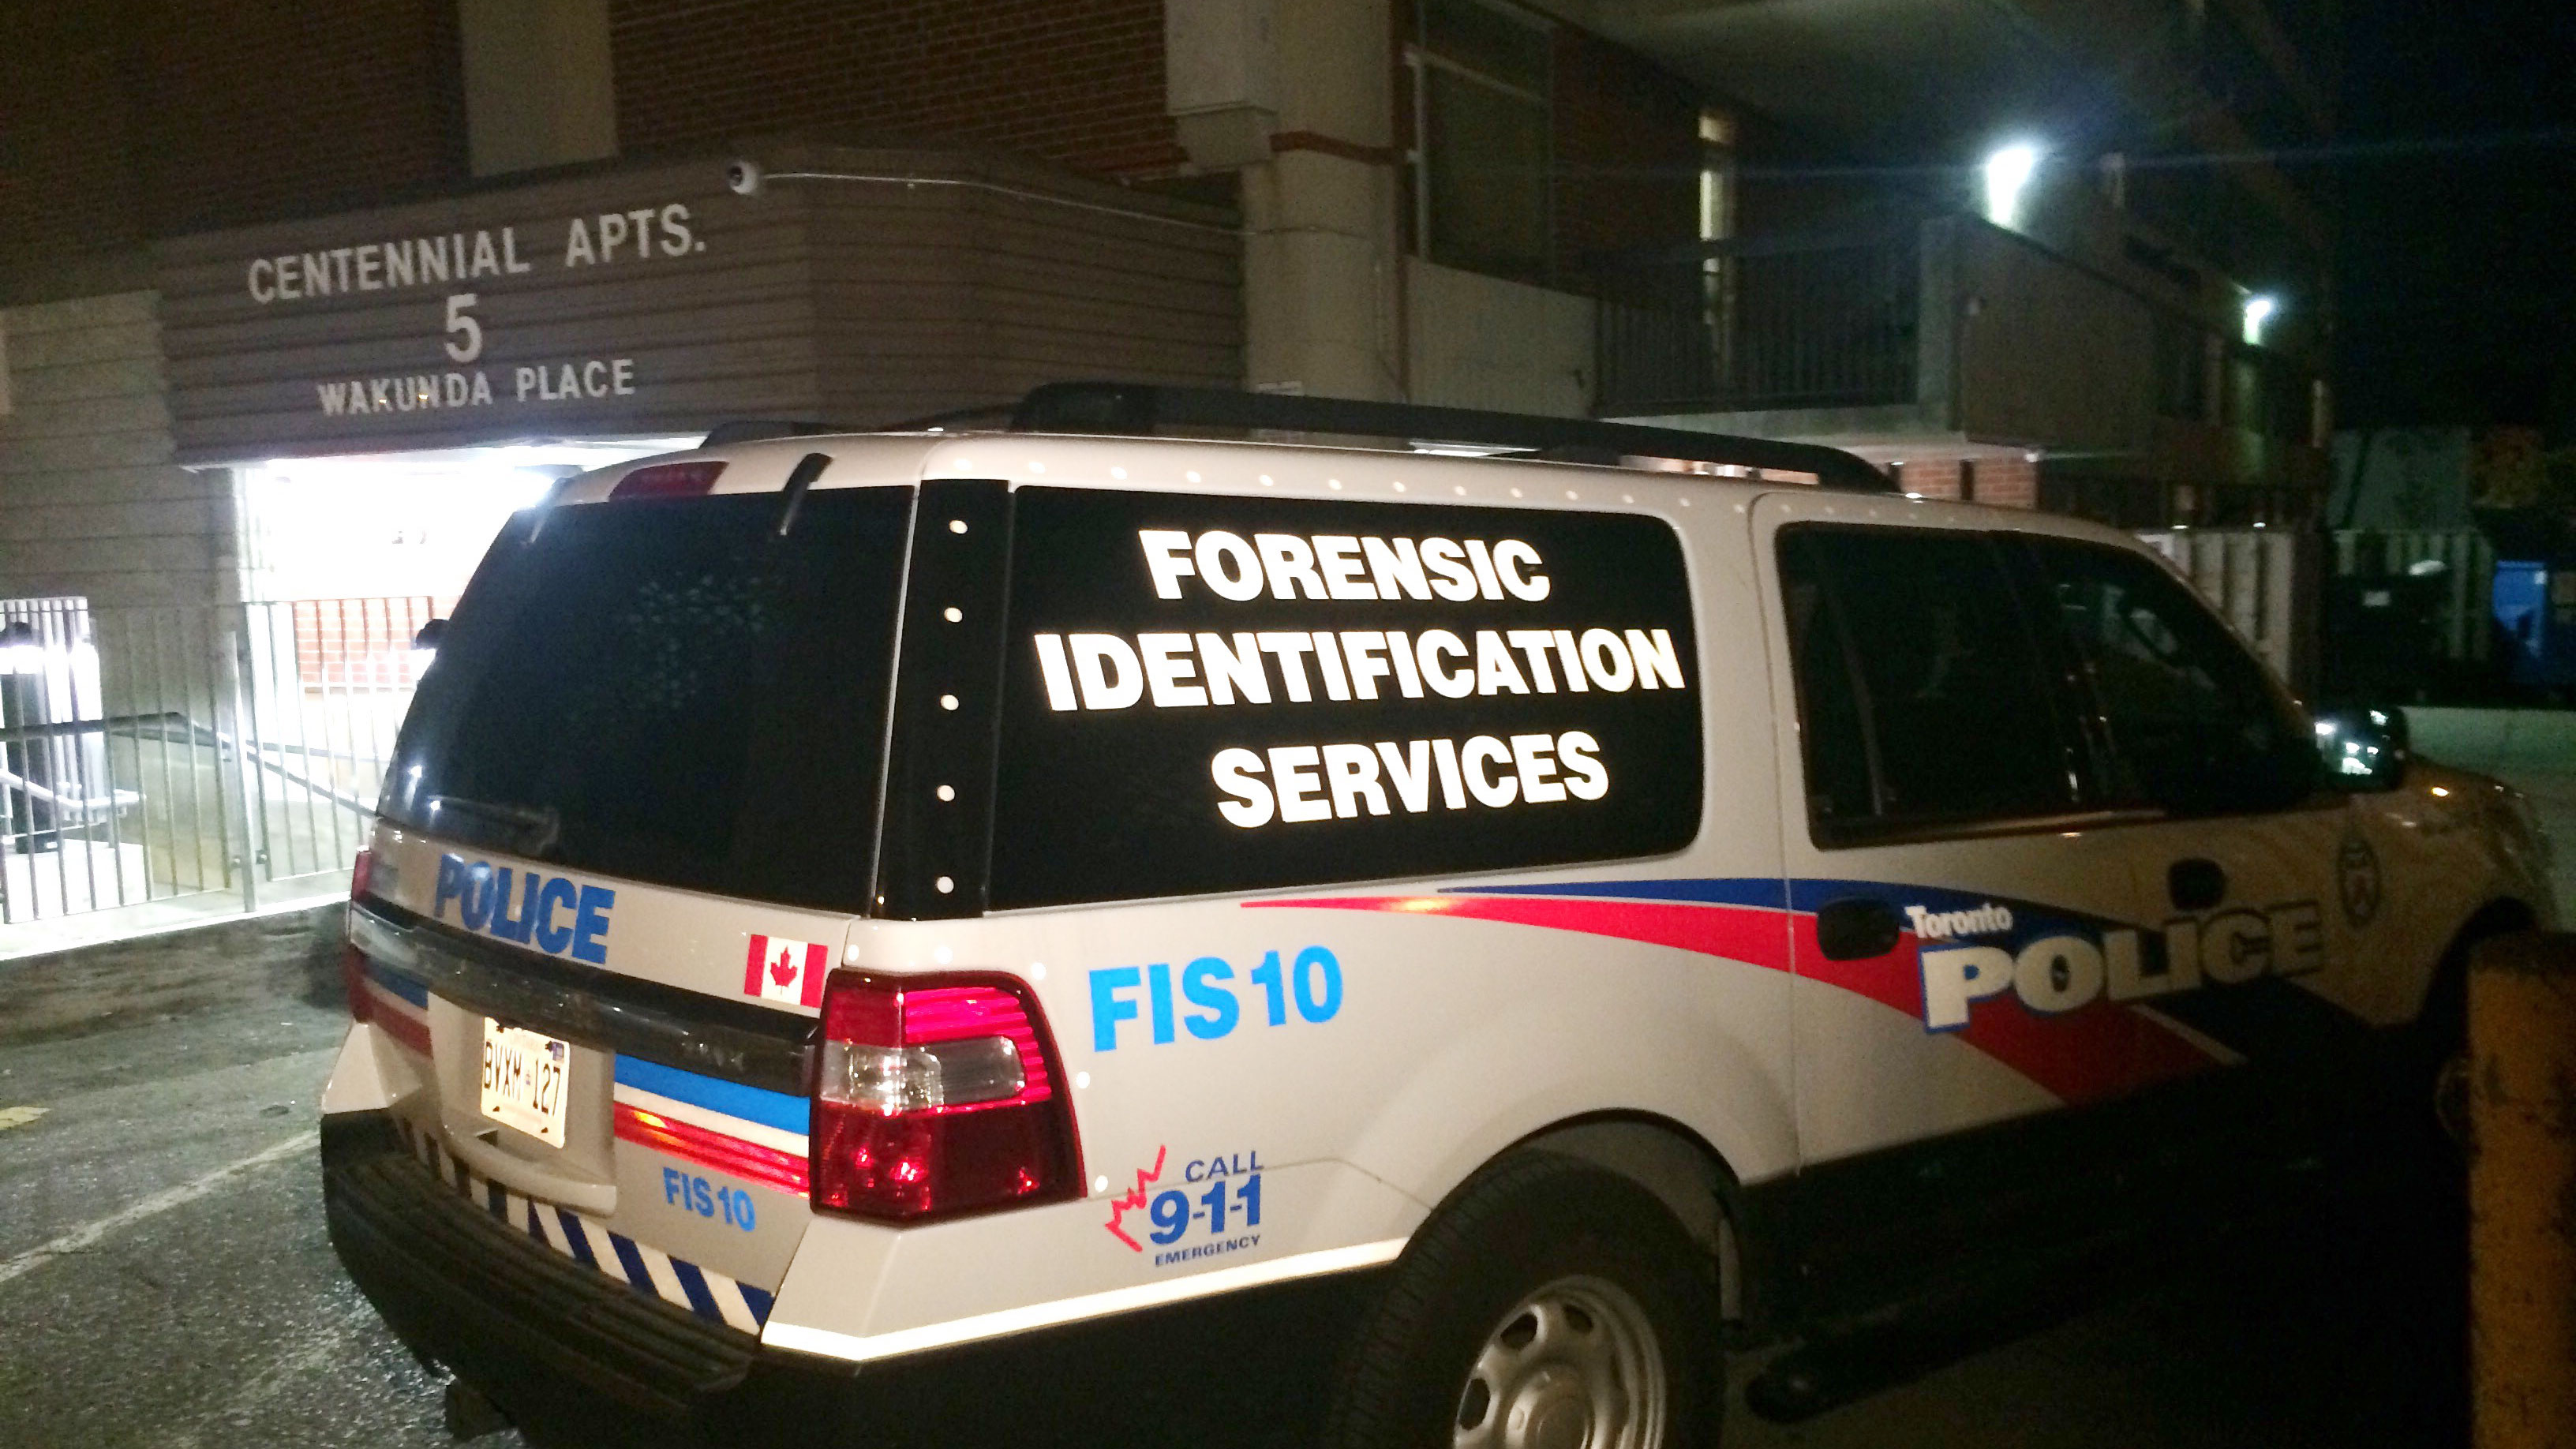 Homicide detectives investigate death of man in Toronto apartment